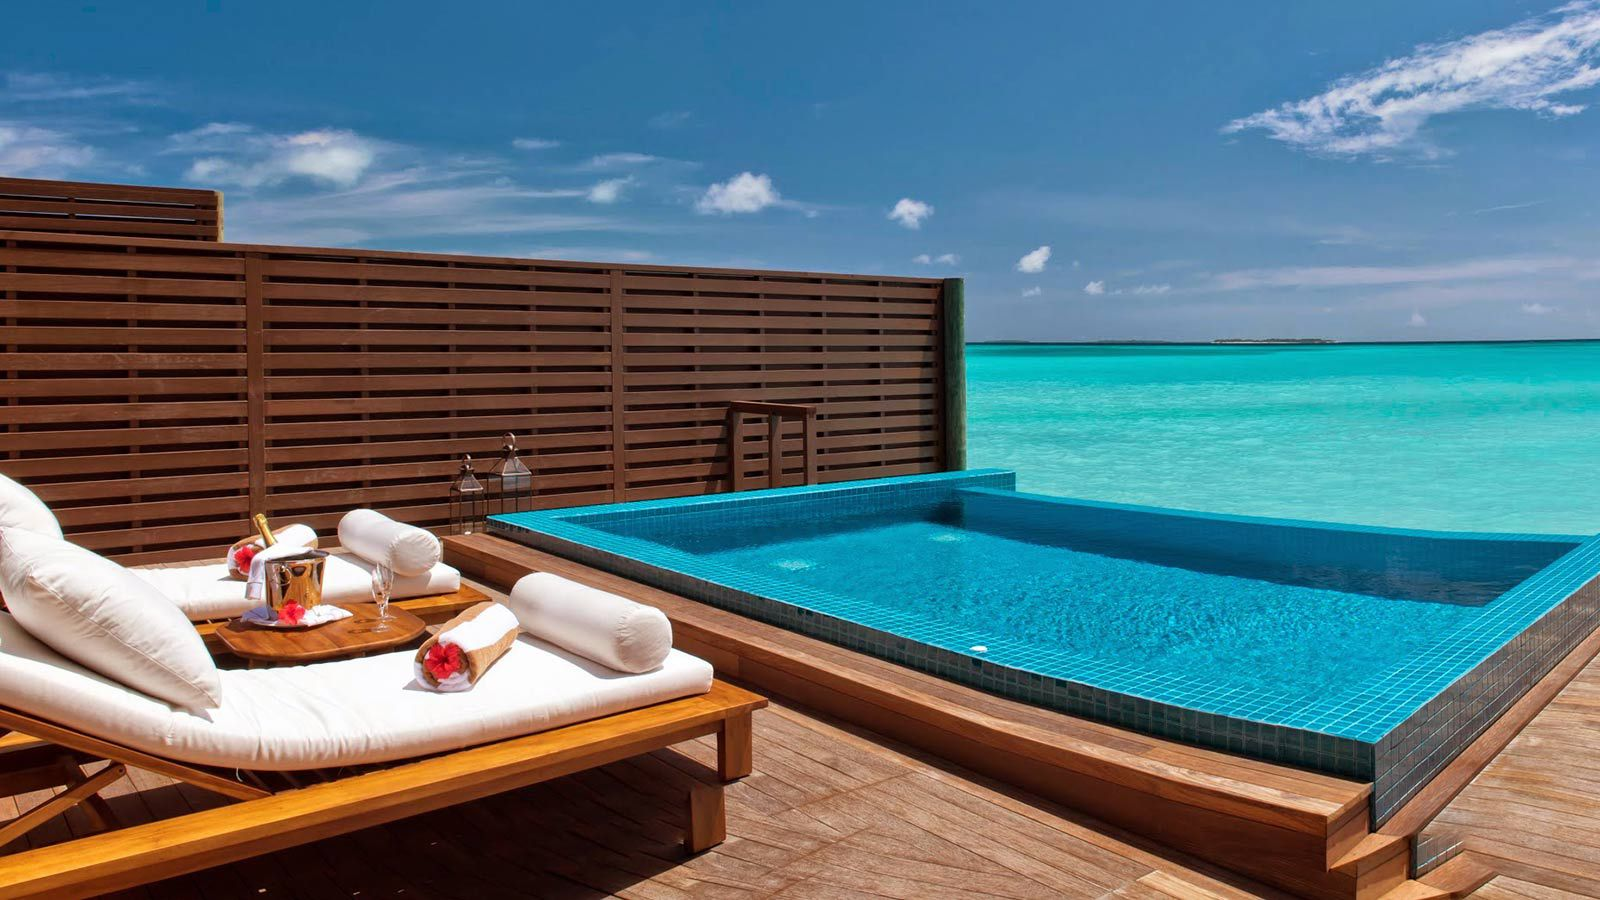 maldives ocean villa luxury ocean pool villa maldives hideaway. Black Bedroom Furniture Sets. Home Design Ideas